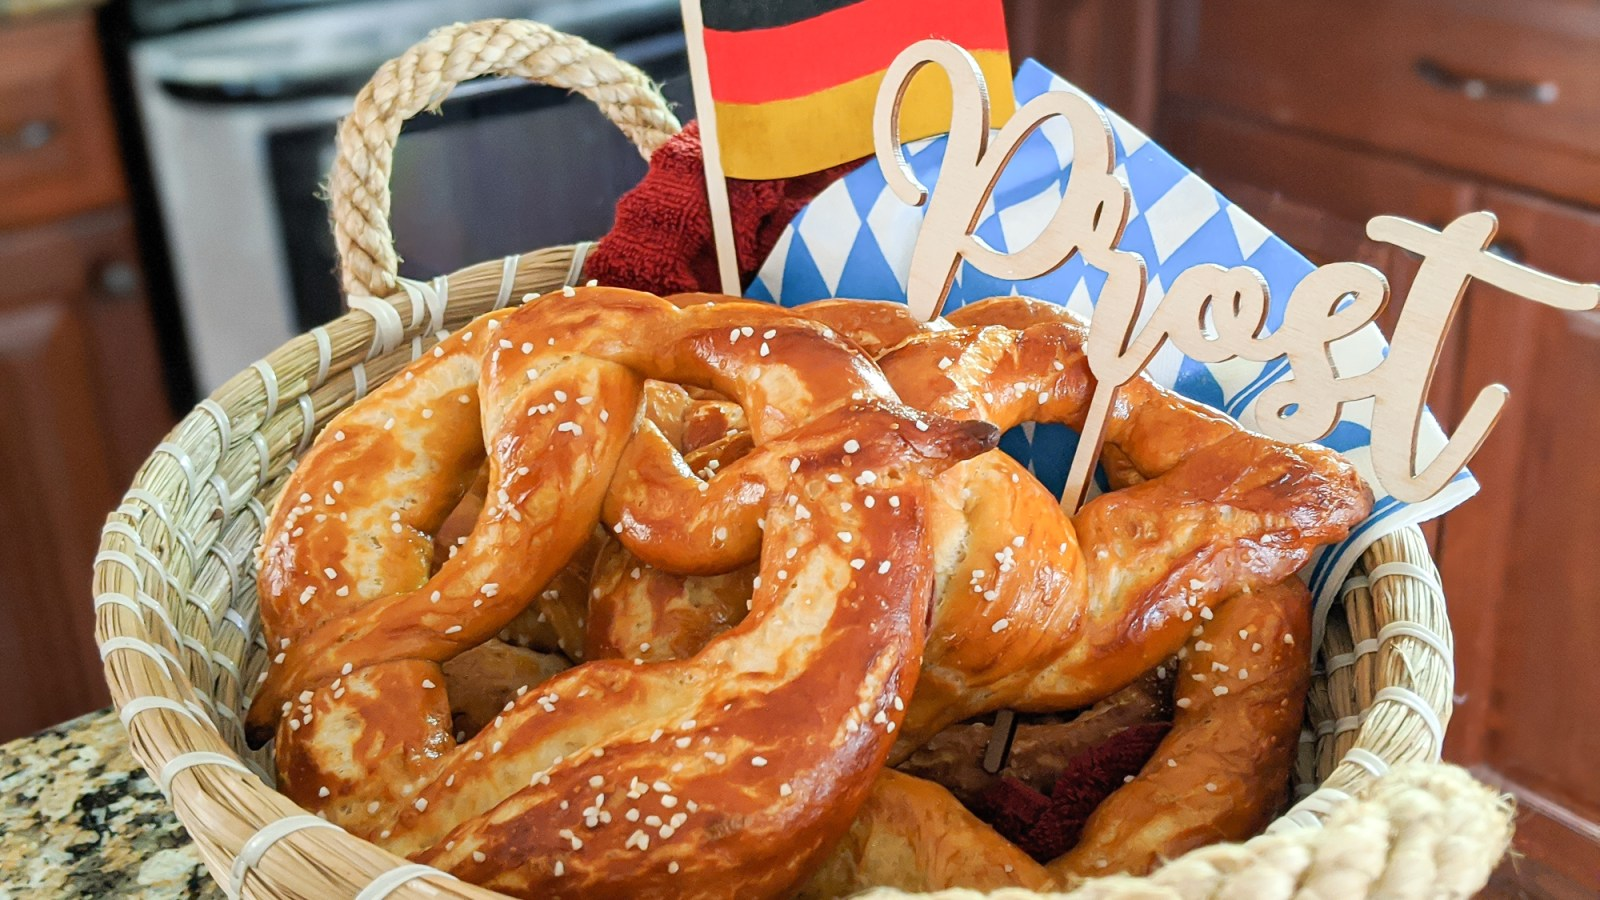 The perfect Oktoberfest party foods for your oktoberfest-themed party at home   #oktoberfest #oktoberfestfood #germanfood #germanrecipes #pretzels